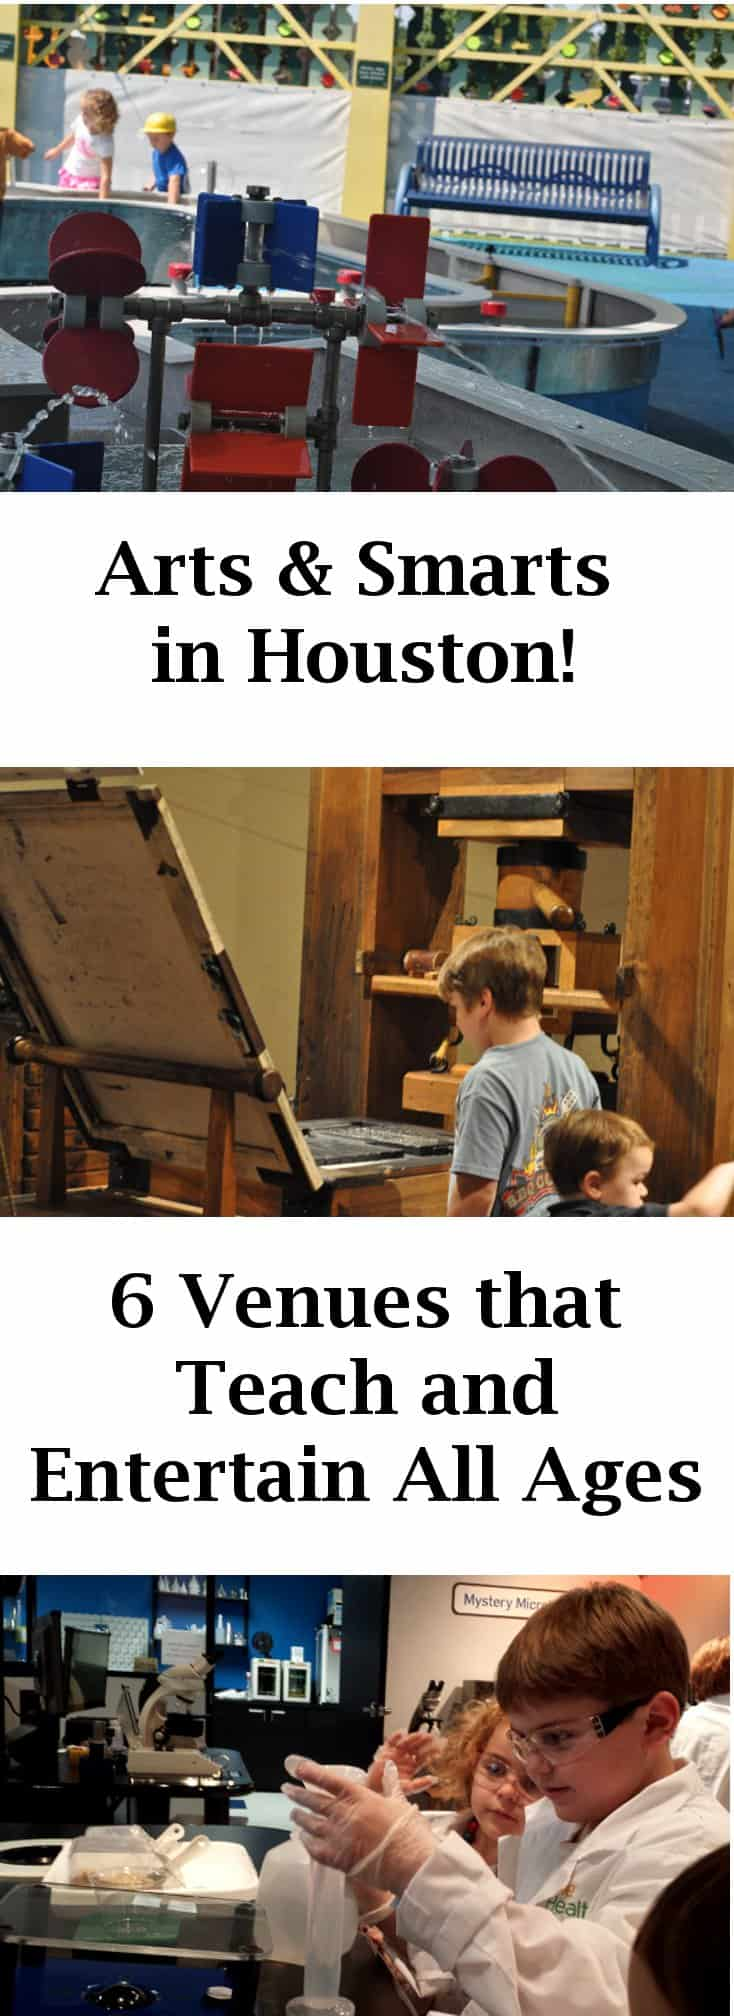 Arts and Smarts in Houston